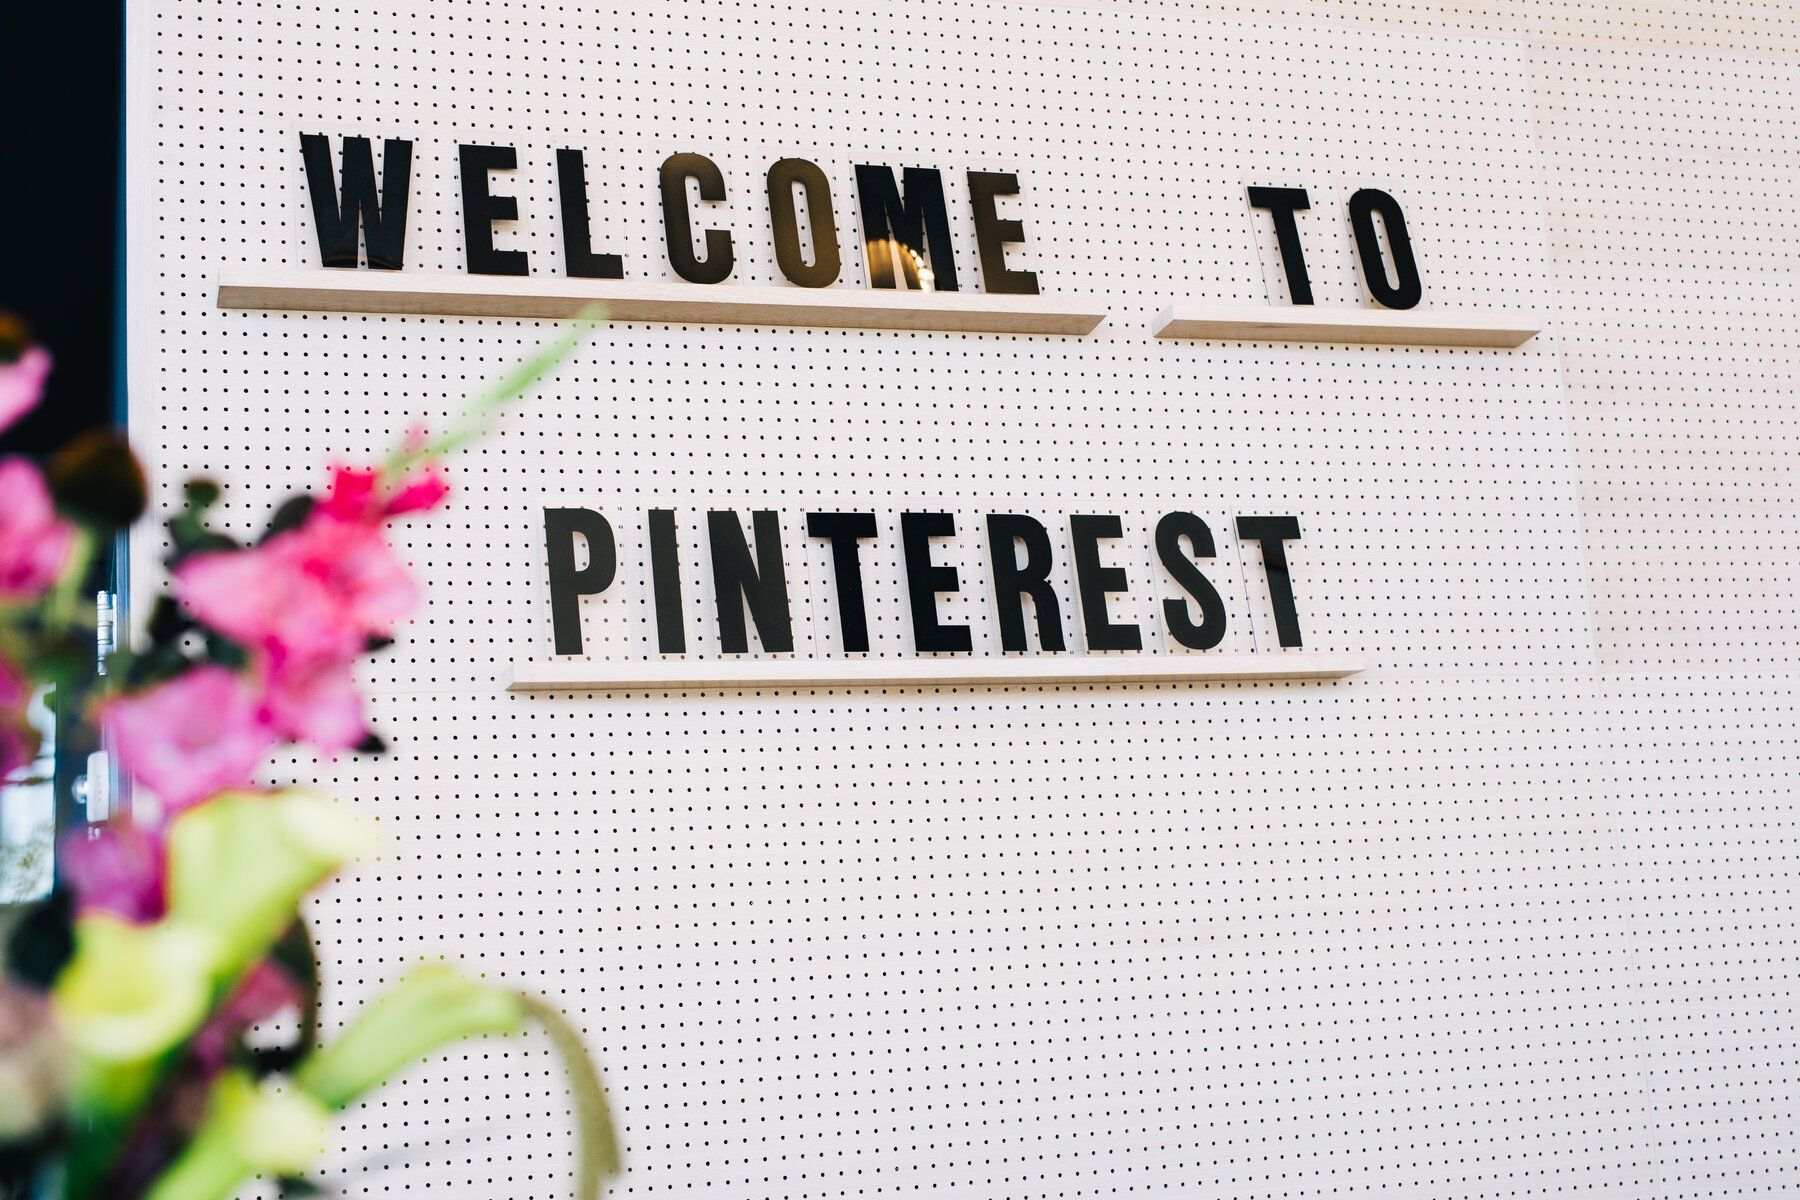 ACTION PLAN: Use Pinterest to get More Etsy Traffic